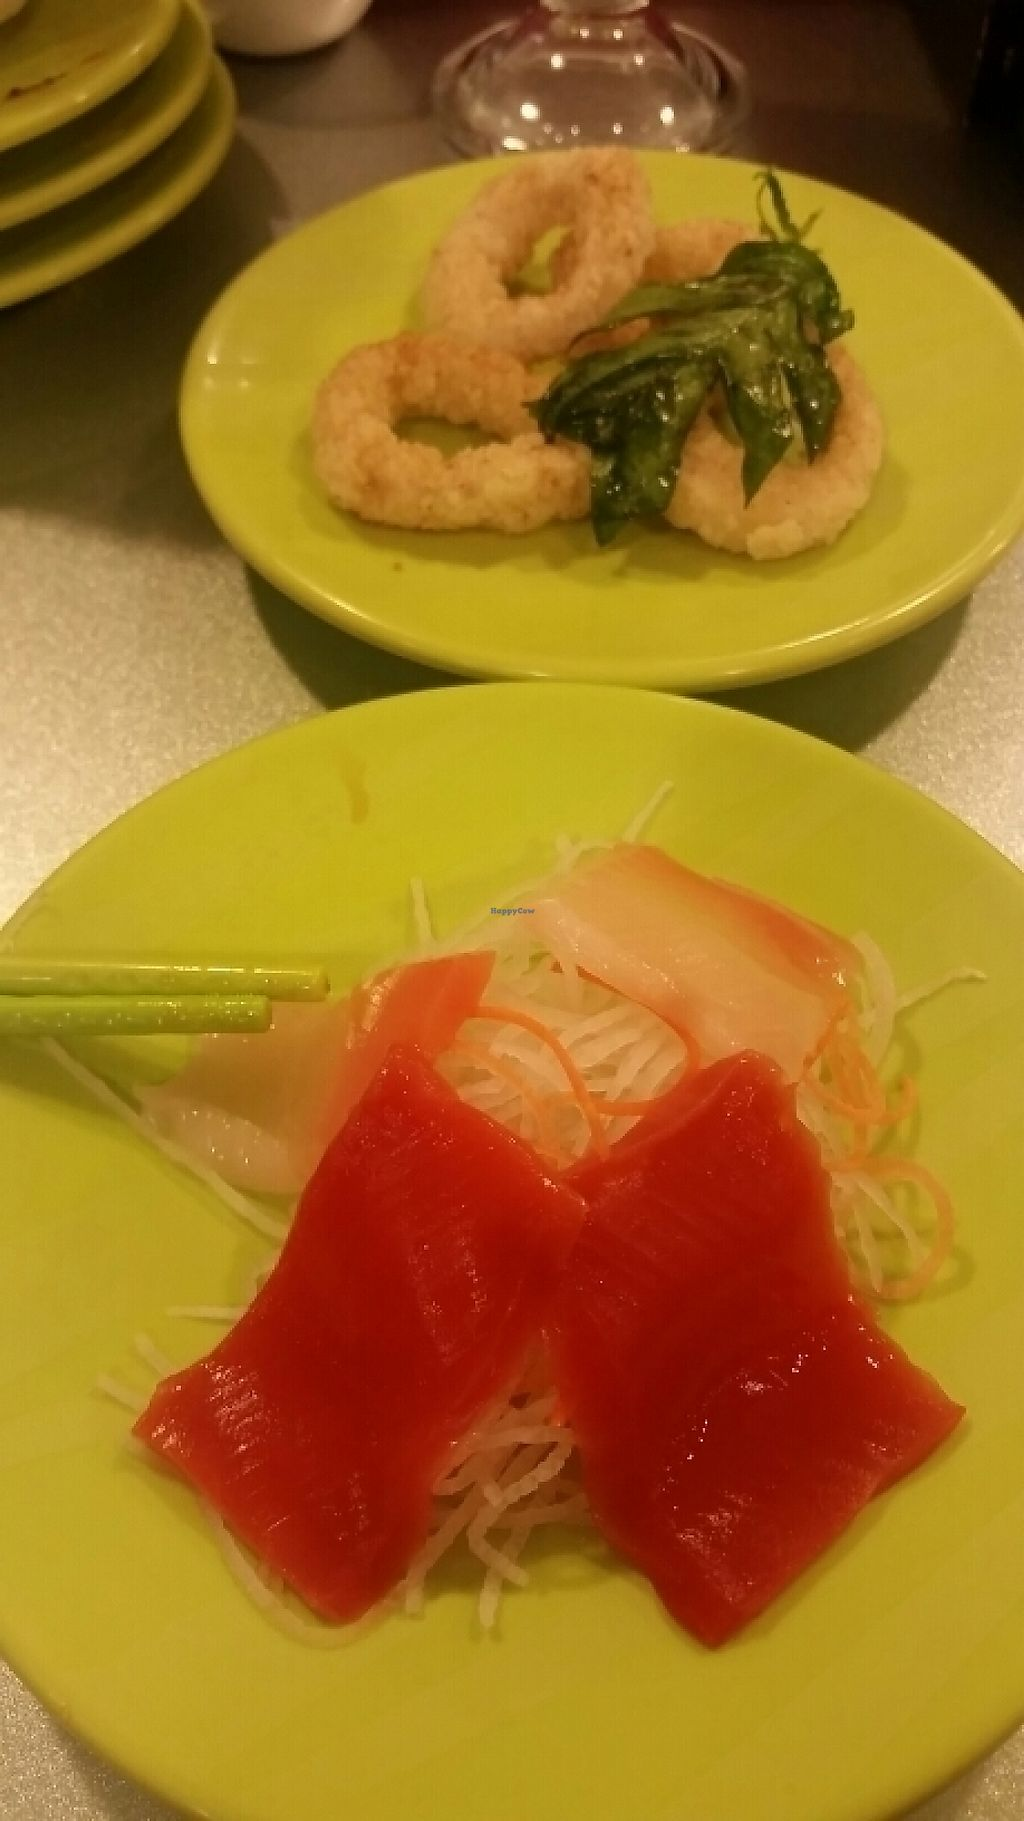 """Photo of Shuiwen  by <a href=""""/members/profile/unabashed"""">unabashed</a> <br/>Vegan sushi and calamari <br/> May 15, 2017  - <a href='/contact/abuse/image/48182/259132'>Report</a>"""